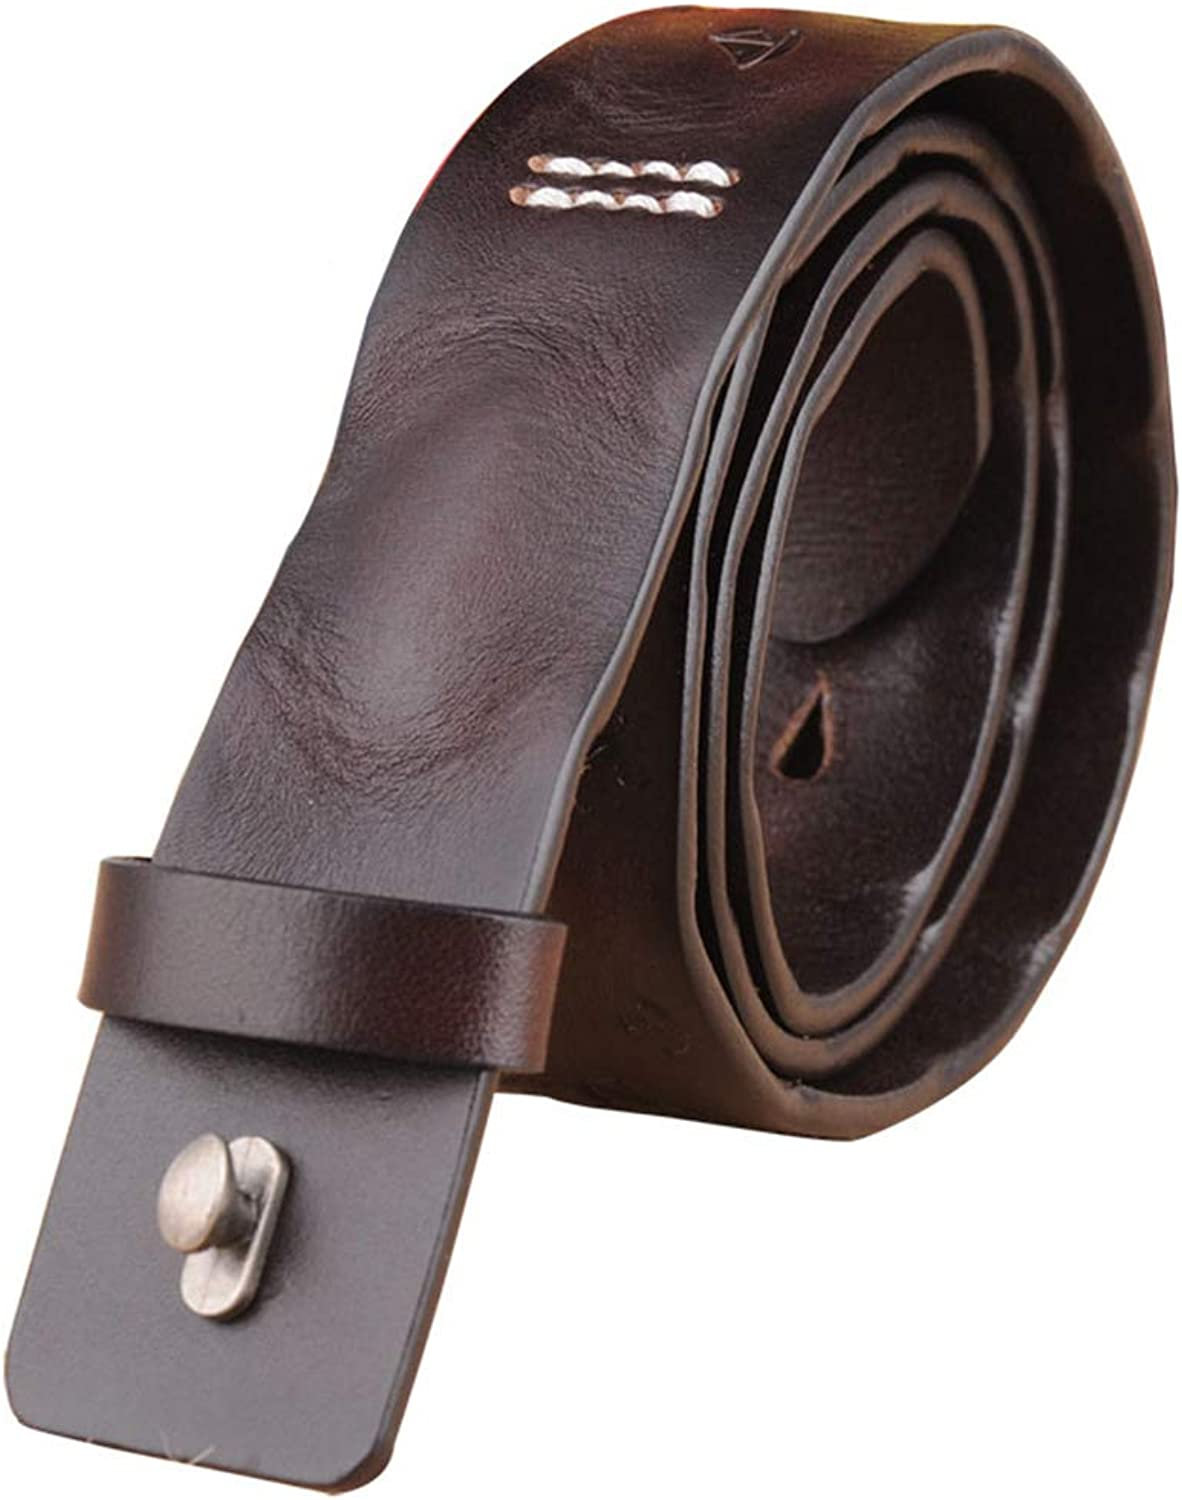 Belt Ladies Leather Top Layer Pure Leather Smooth Buckle Single Layer Leather Belt Casual (color   Brown)